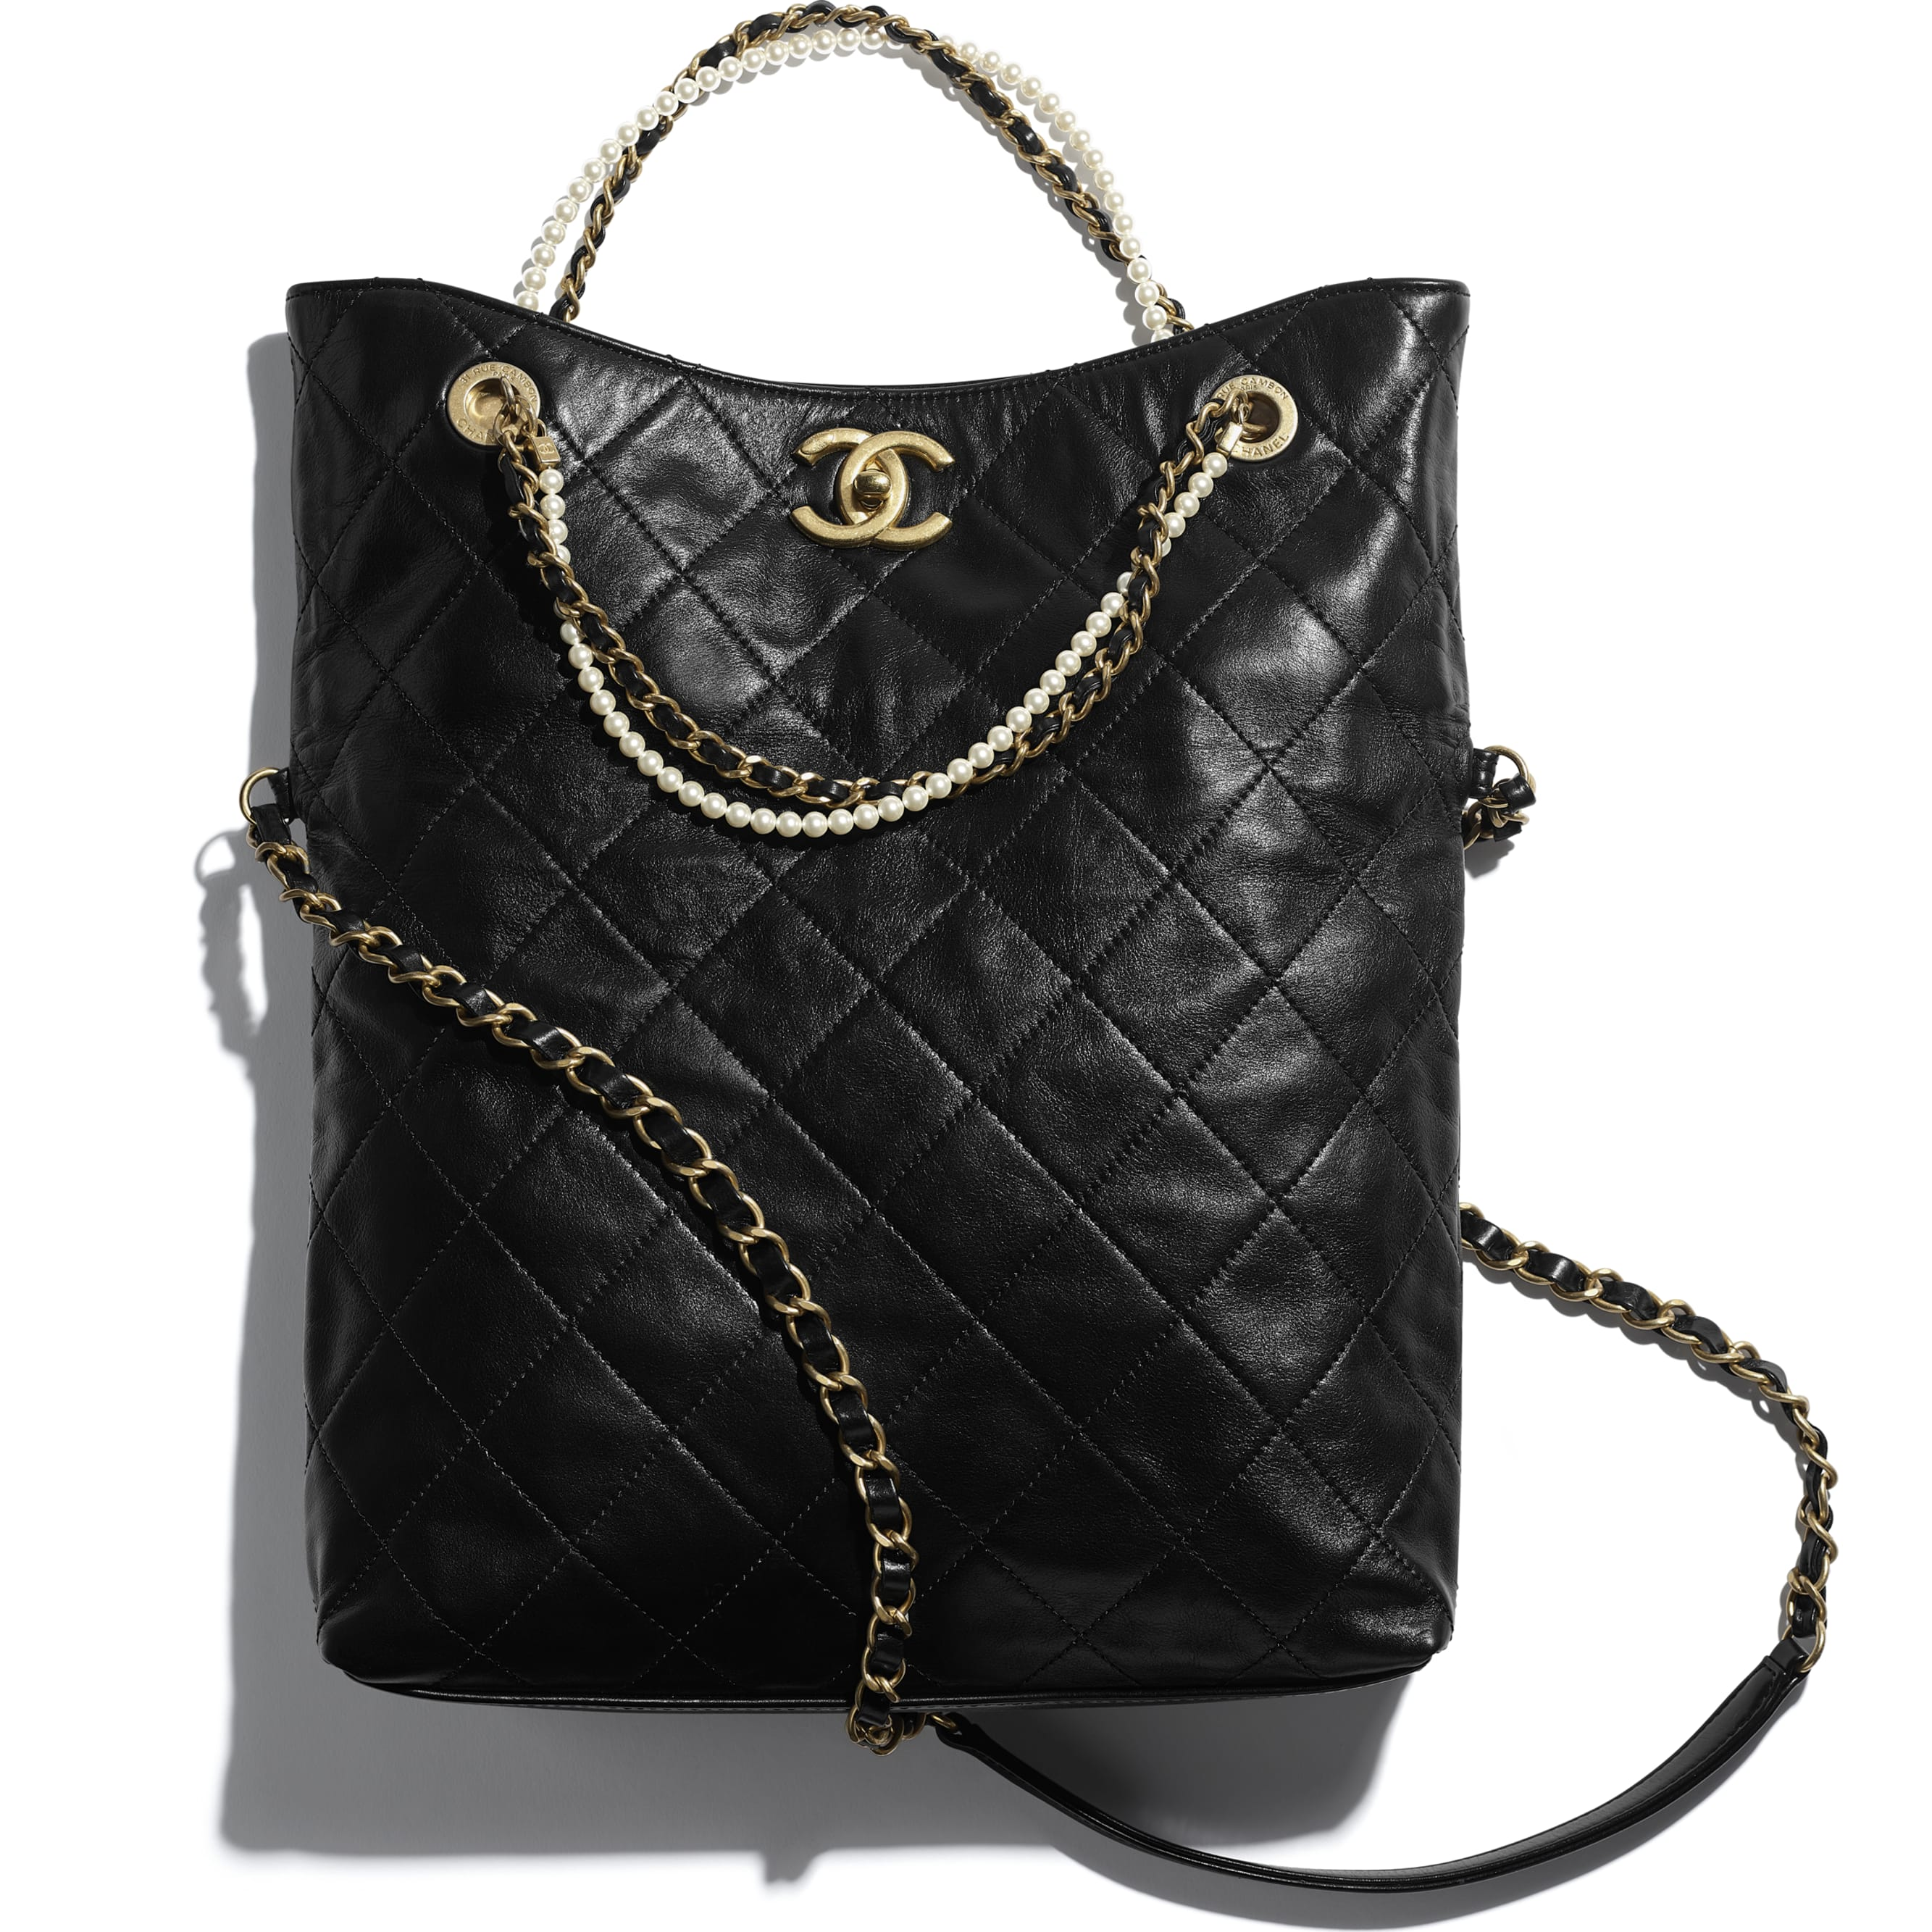 Shopping Bag - Black - Calfskin, Crystal Pearls & Gold-Tone Metal - CHANEL - Extra view - see standard sized version